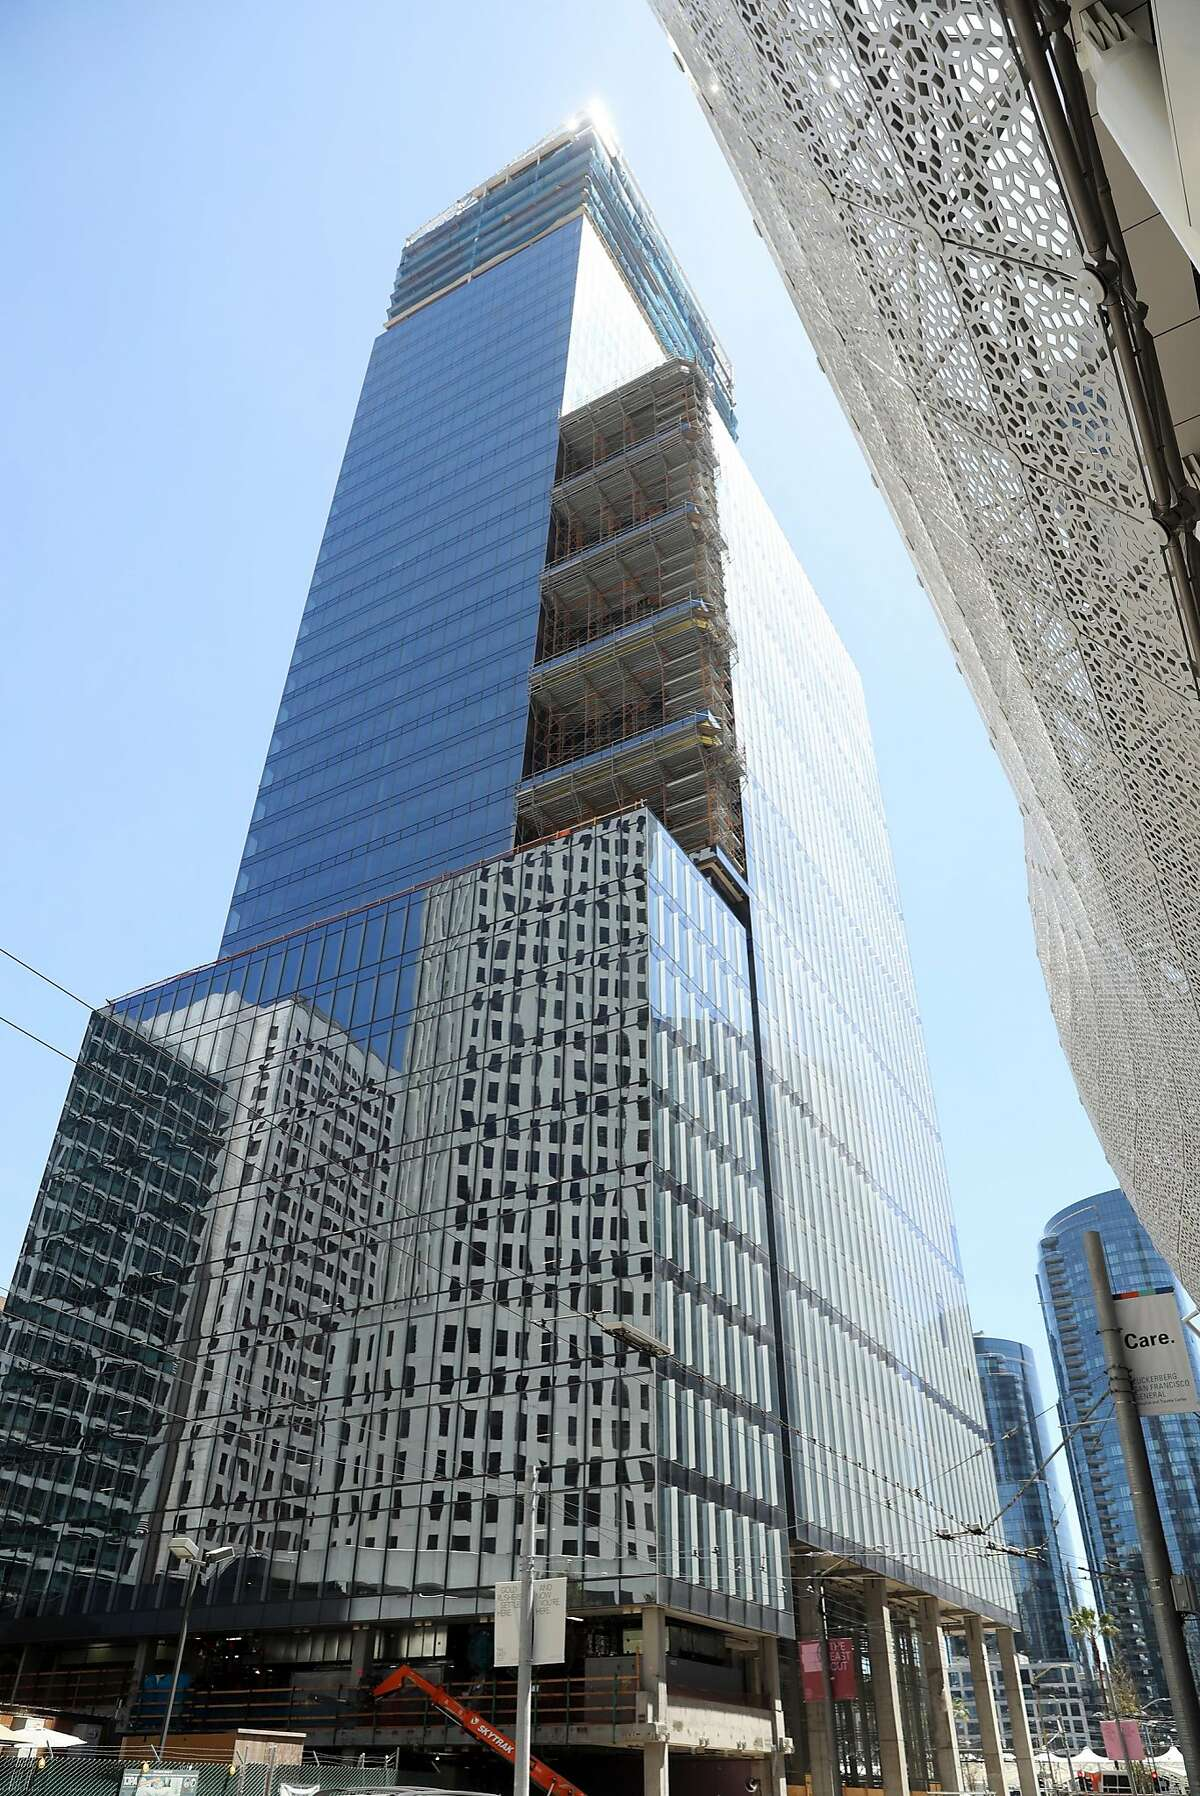 The Park Tower at Transbay is being built at 520 Howard Street in San Francisco, CA on Friday, May 11, 2018.